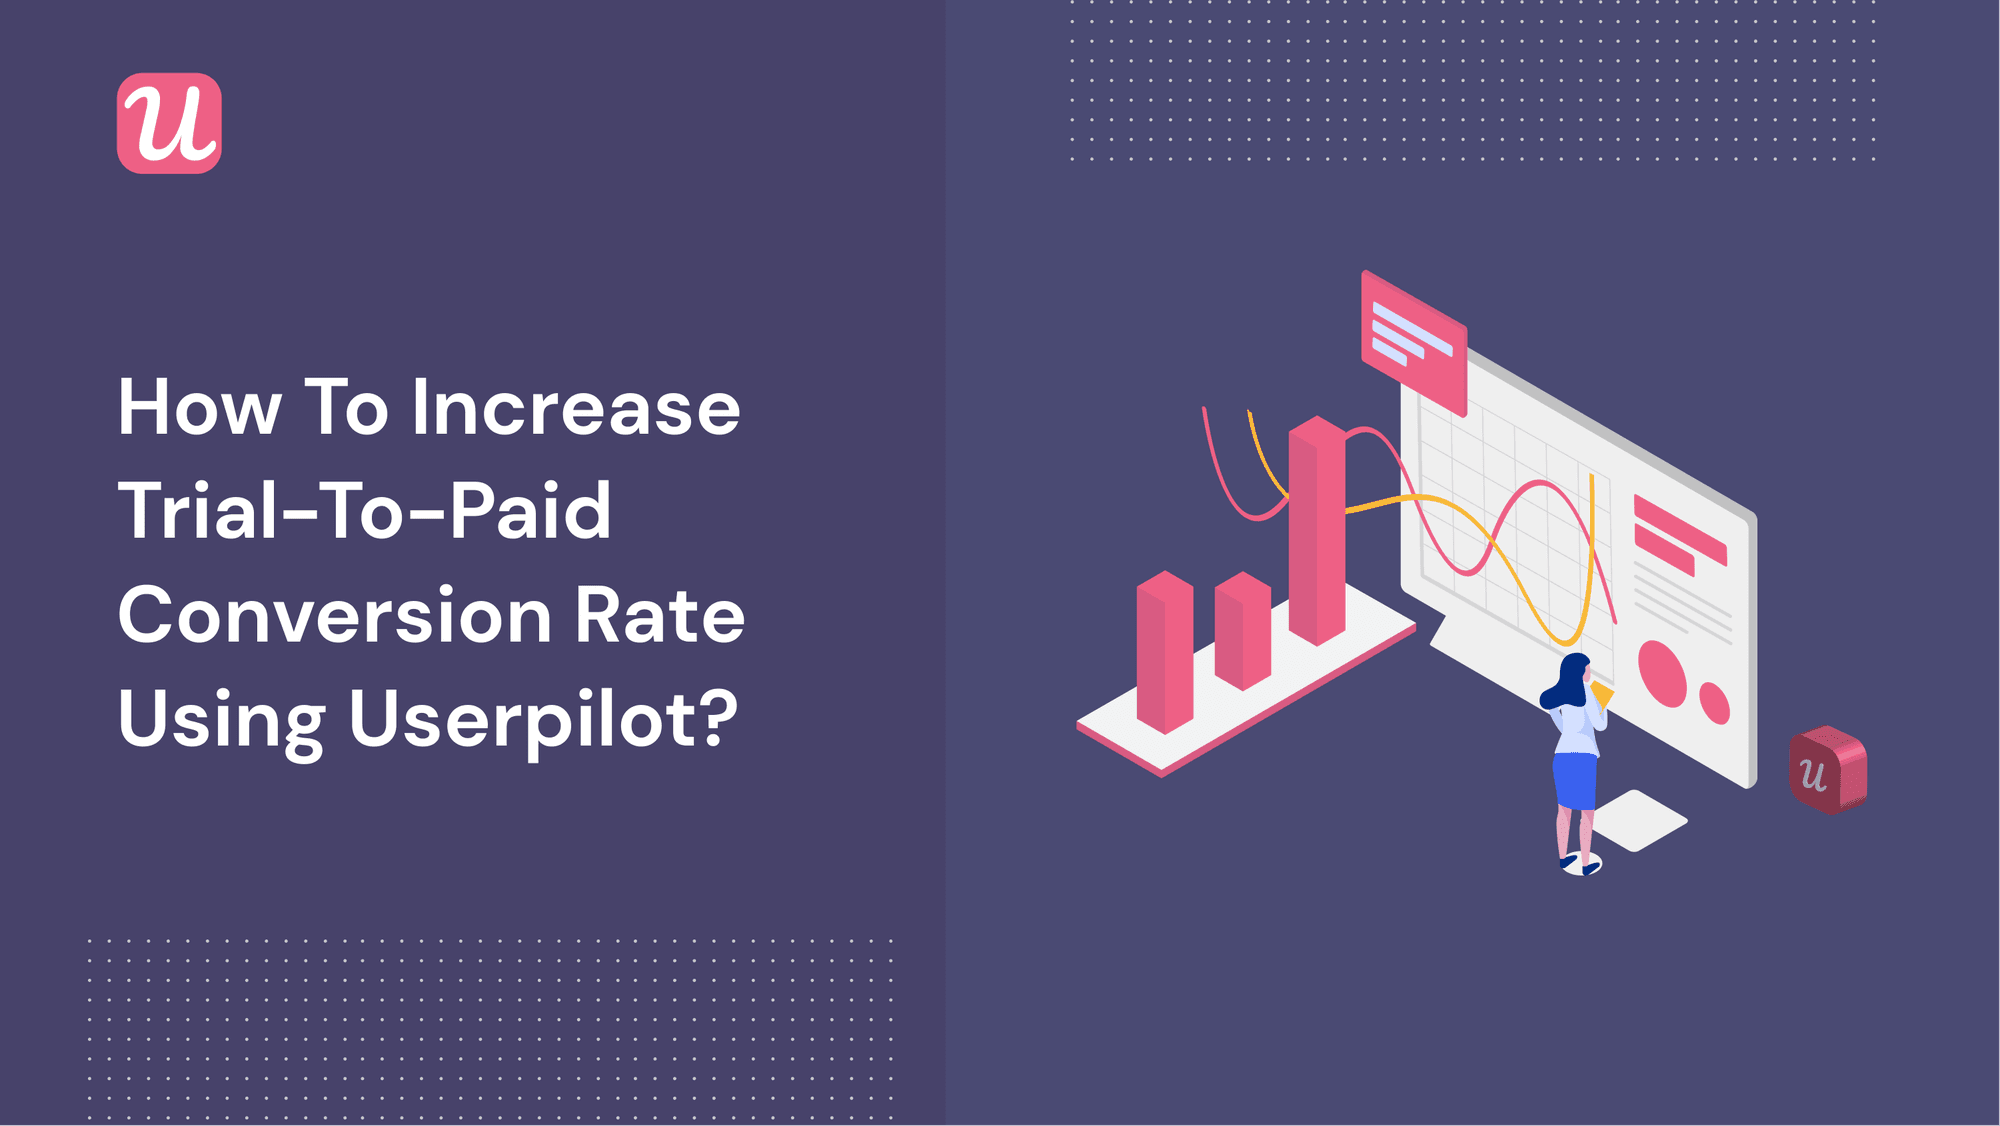 5 Tactics To Increase Trial To Paid Conversion Rate Using Userpilot